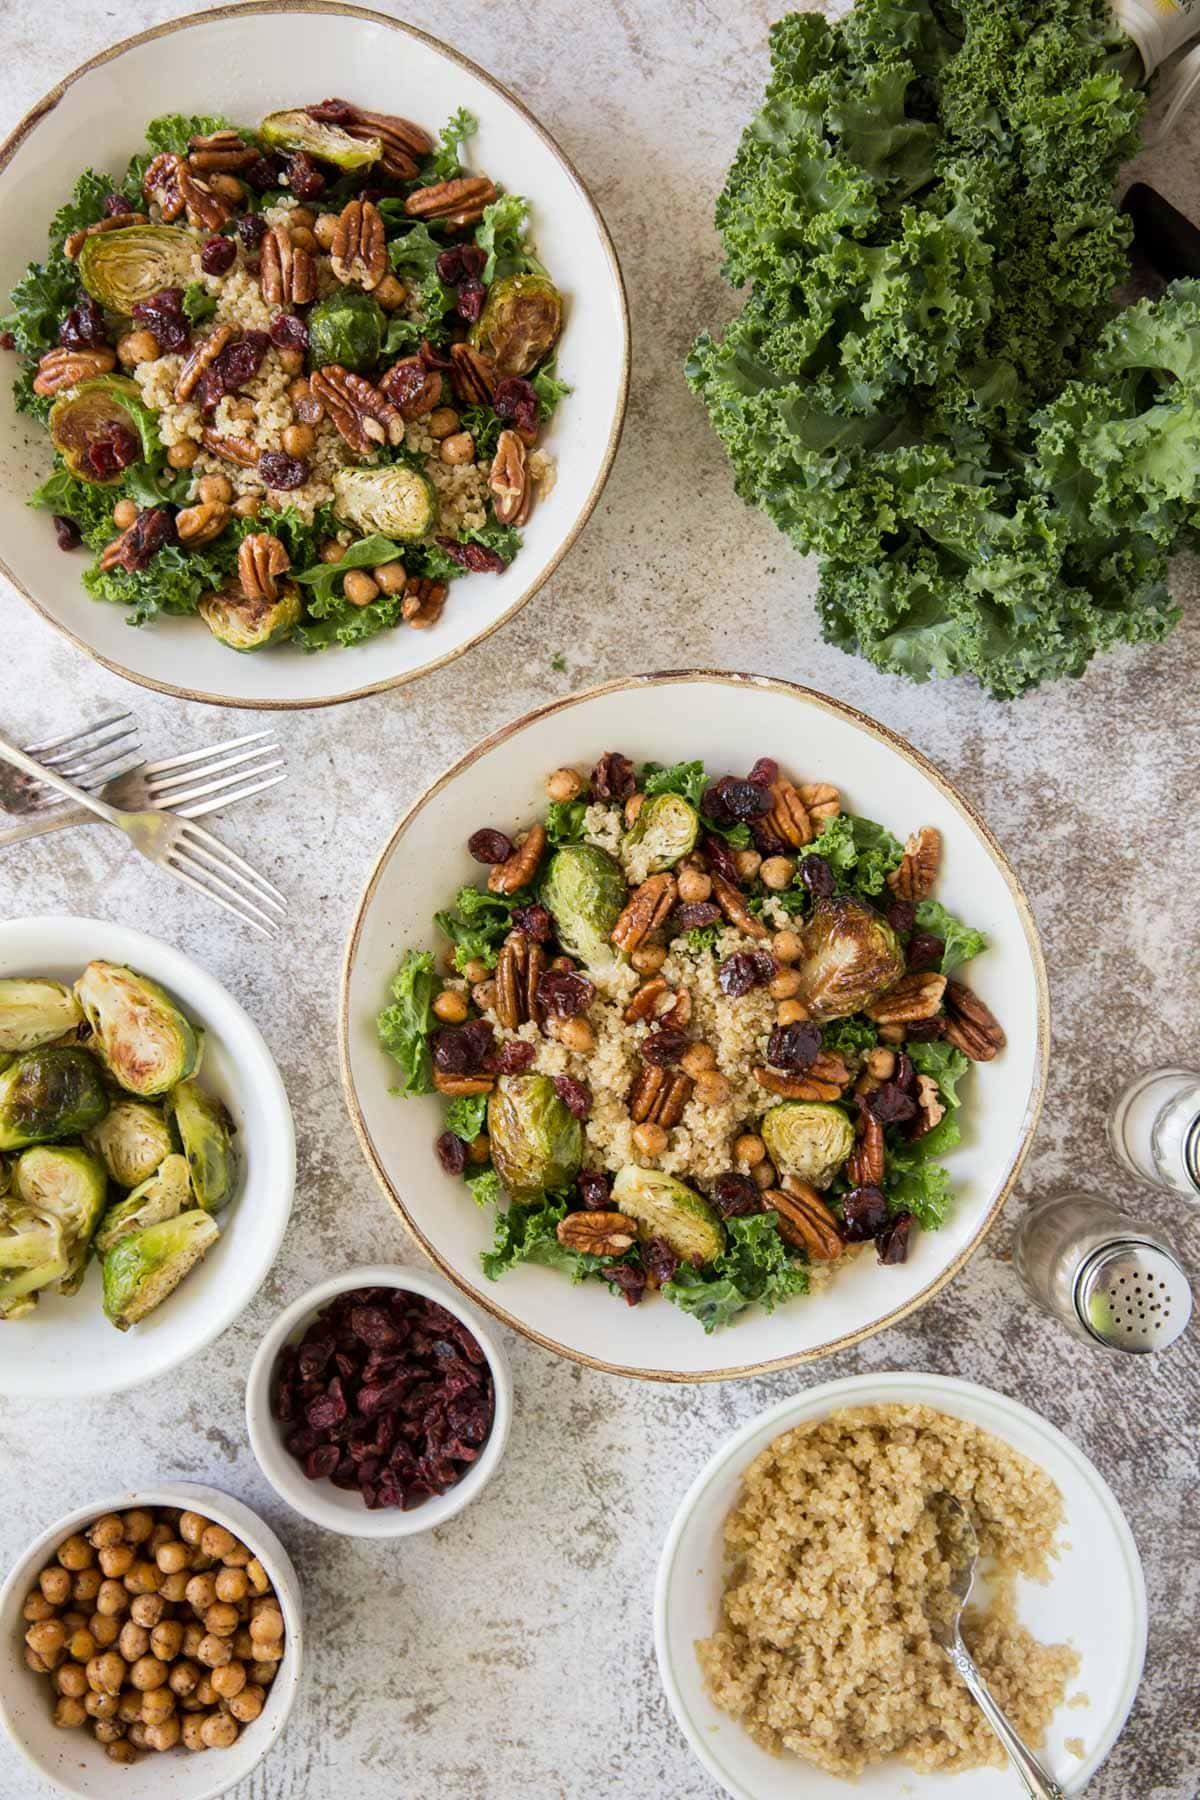 kale, pecans, brussels sprouts, cranberries, white plate, salt and pepper shakers, forks